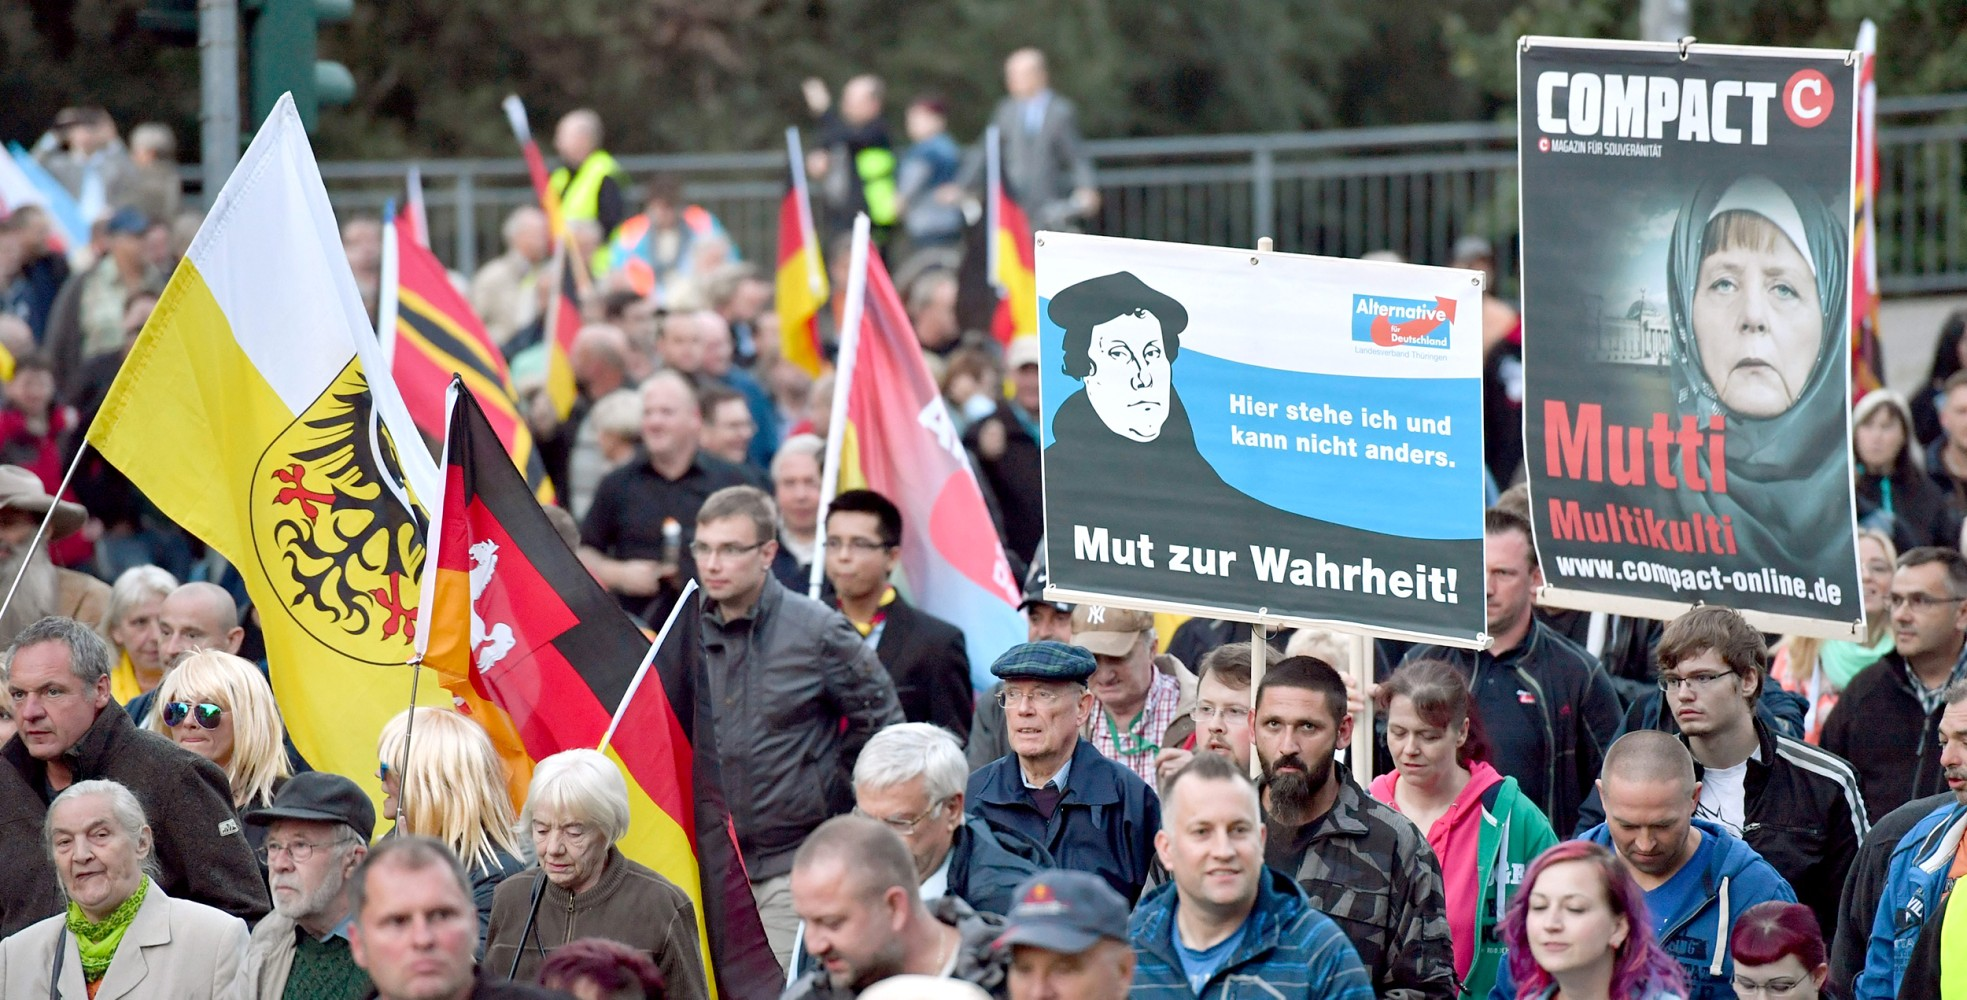 Germanys Populist Right-Wing AfD Party Draws Comparison